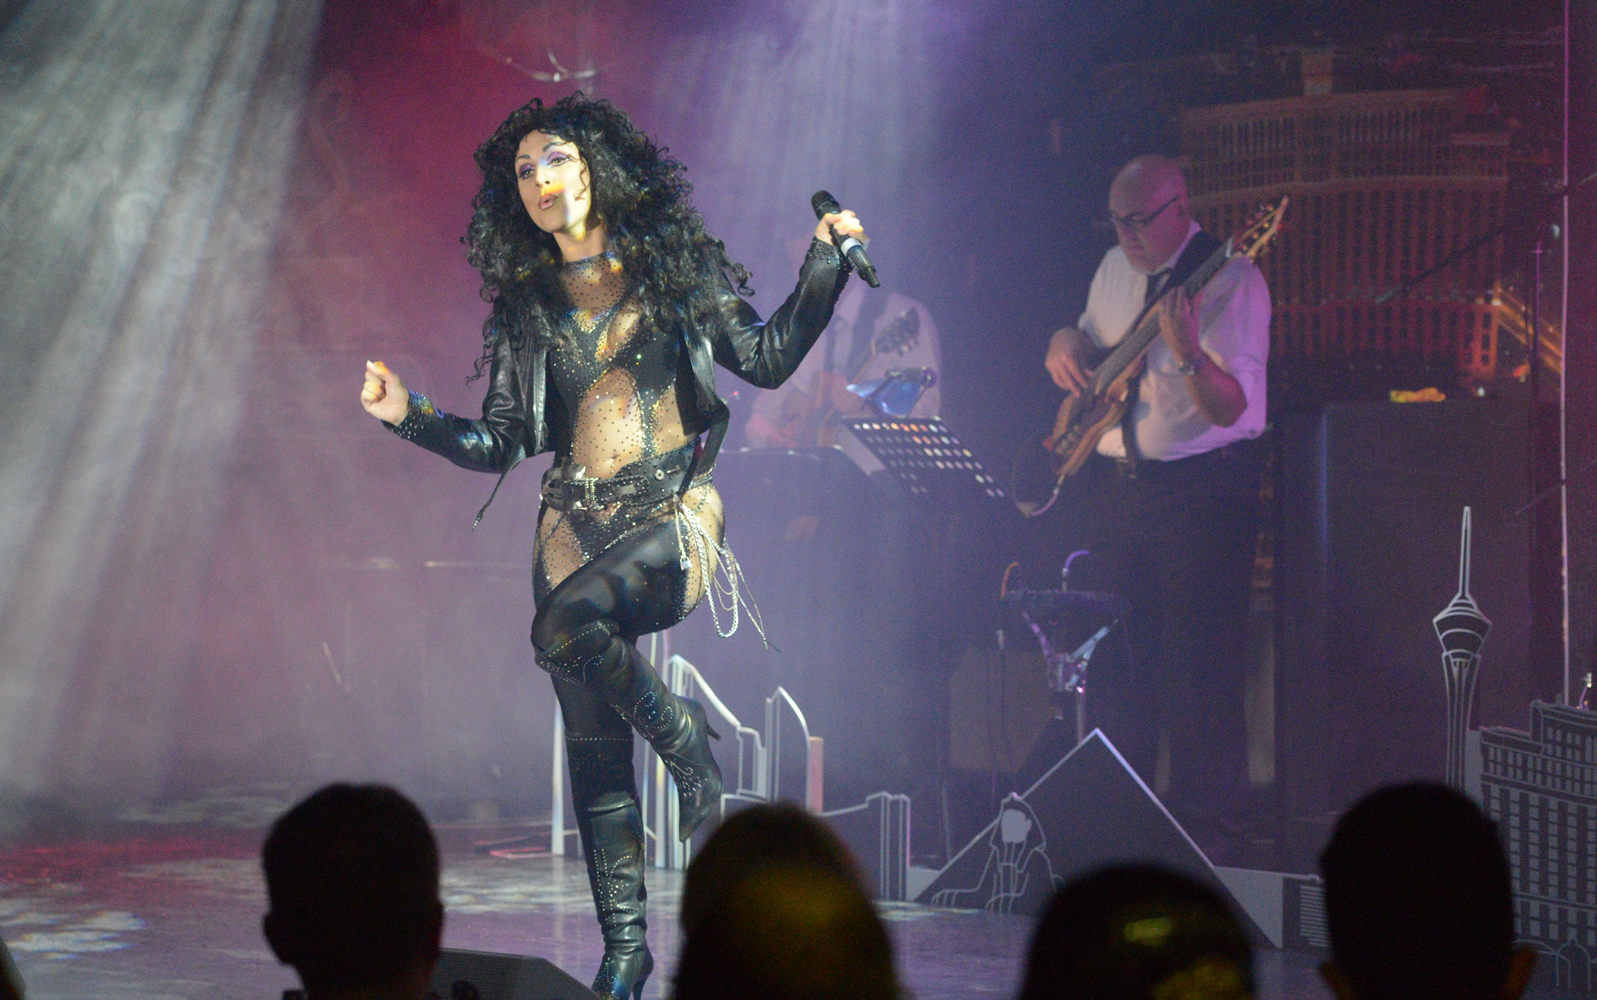 Cher tribute act